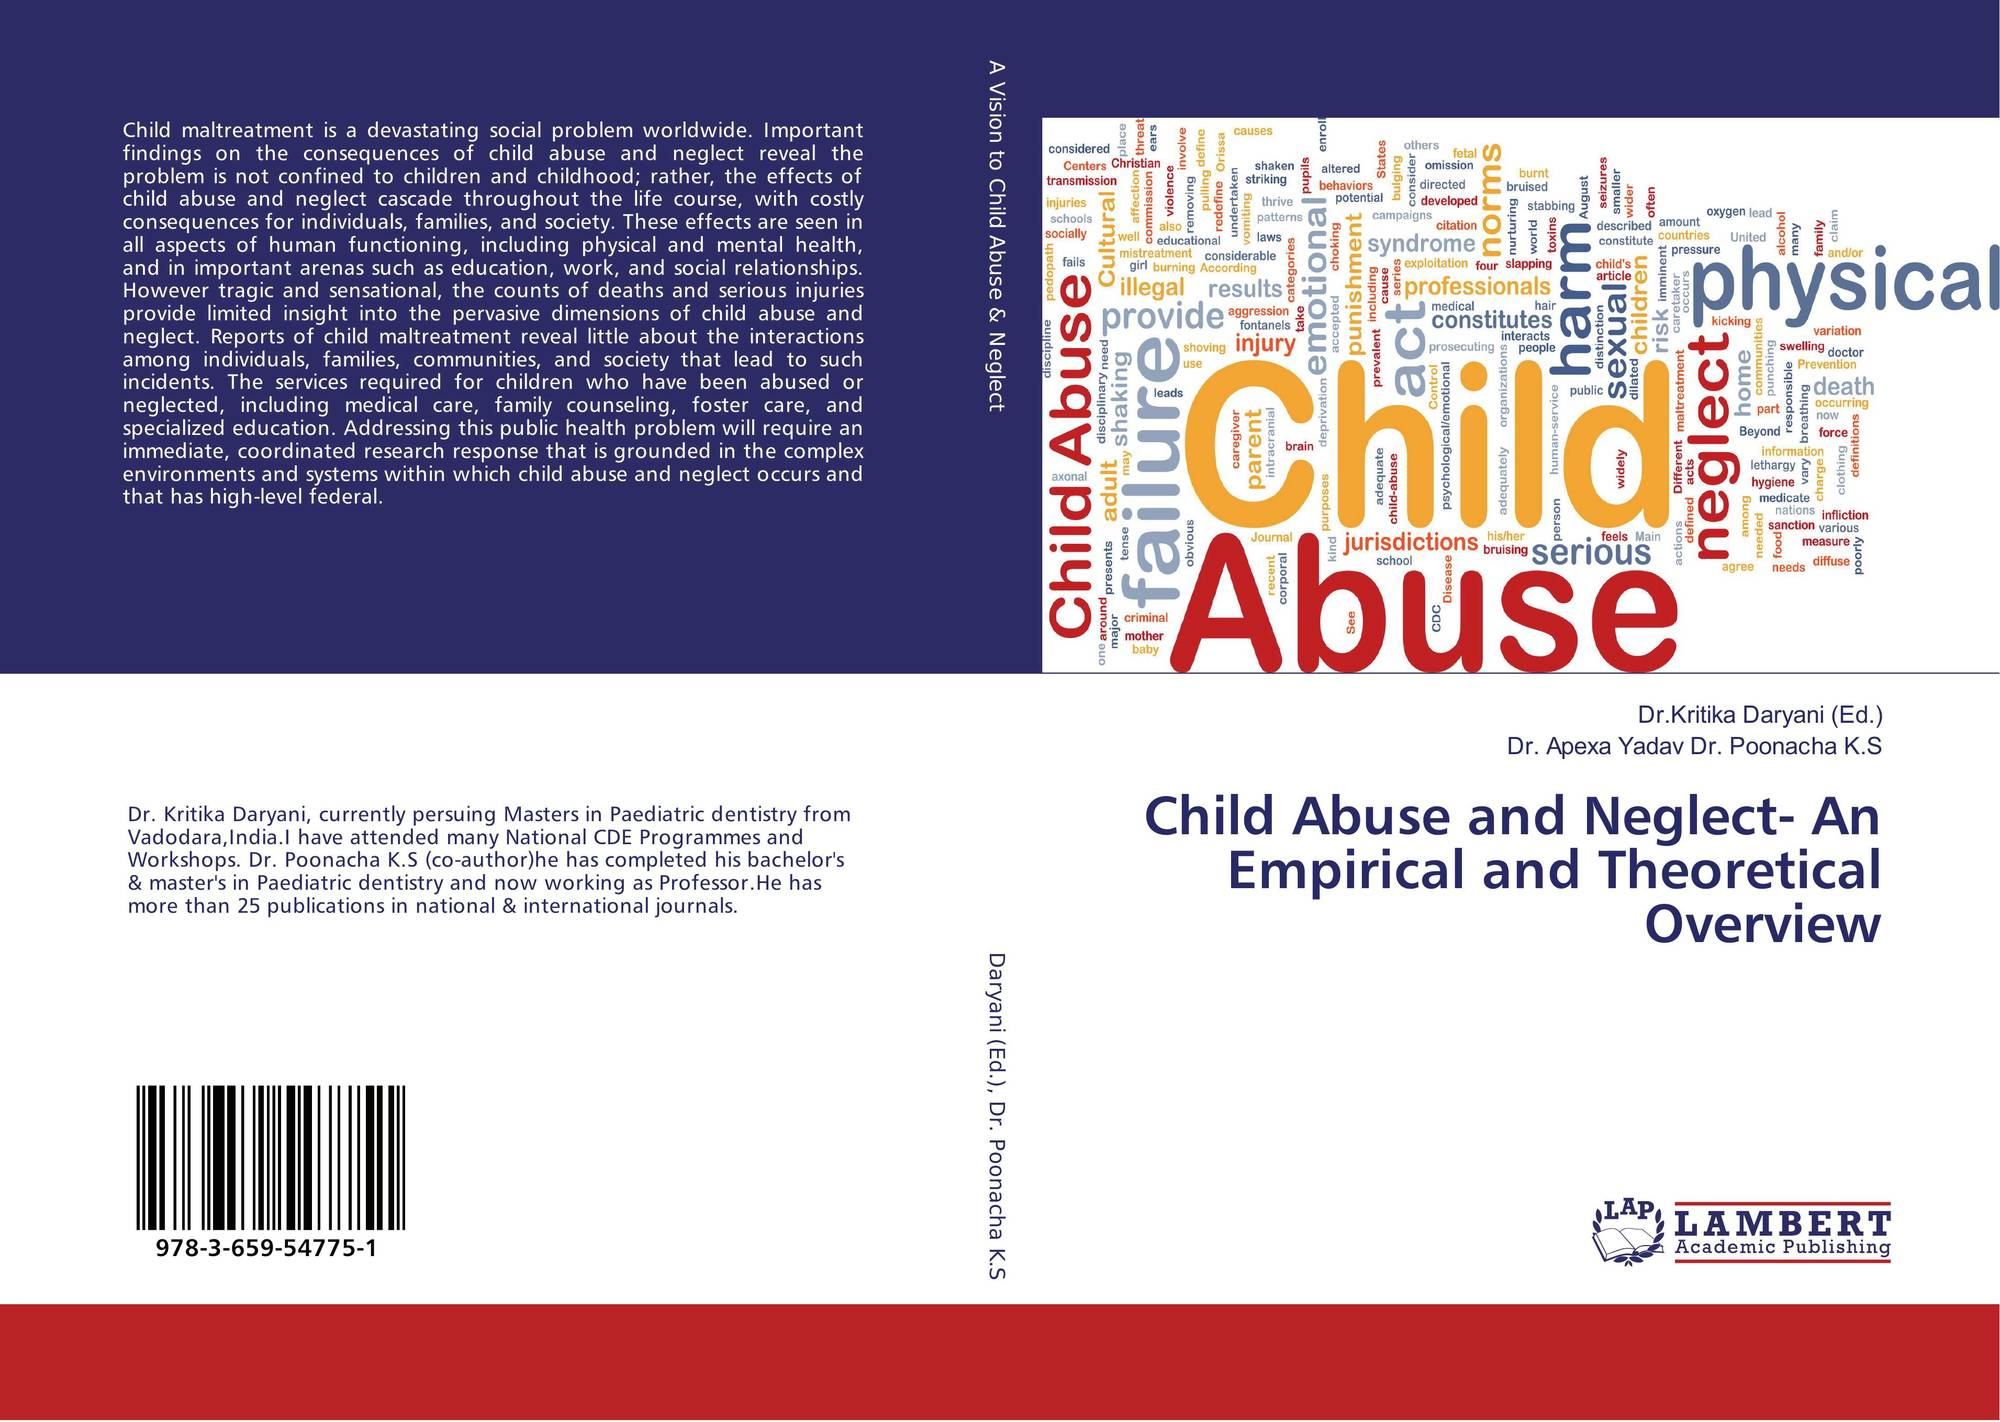 overview and effects of child abuse The majority of children who are abused do not show signs of extreme disturbance research has suggested a relationship between child maltreatment and a variety of short- and long-term consequences, but considerable uncertainty and debate remain about the effects of child.